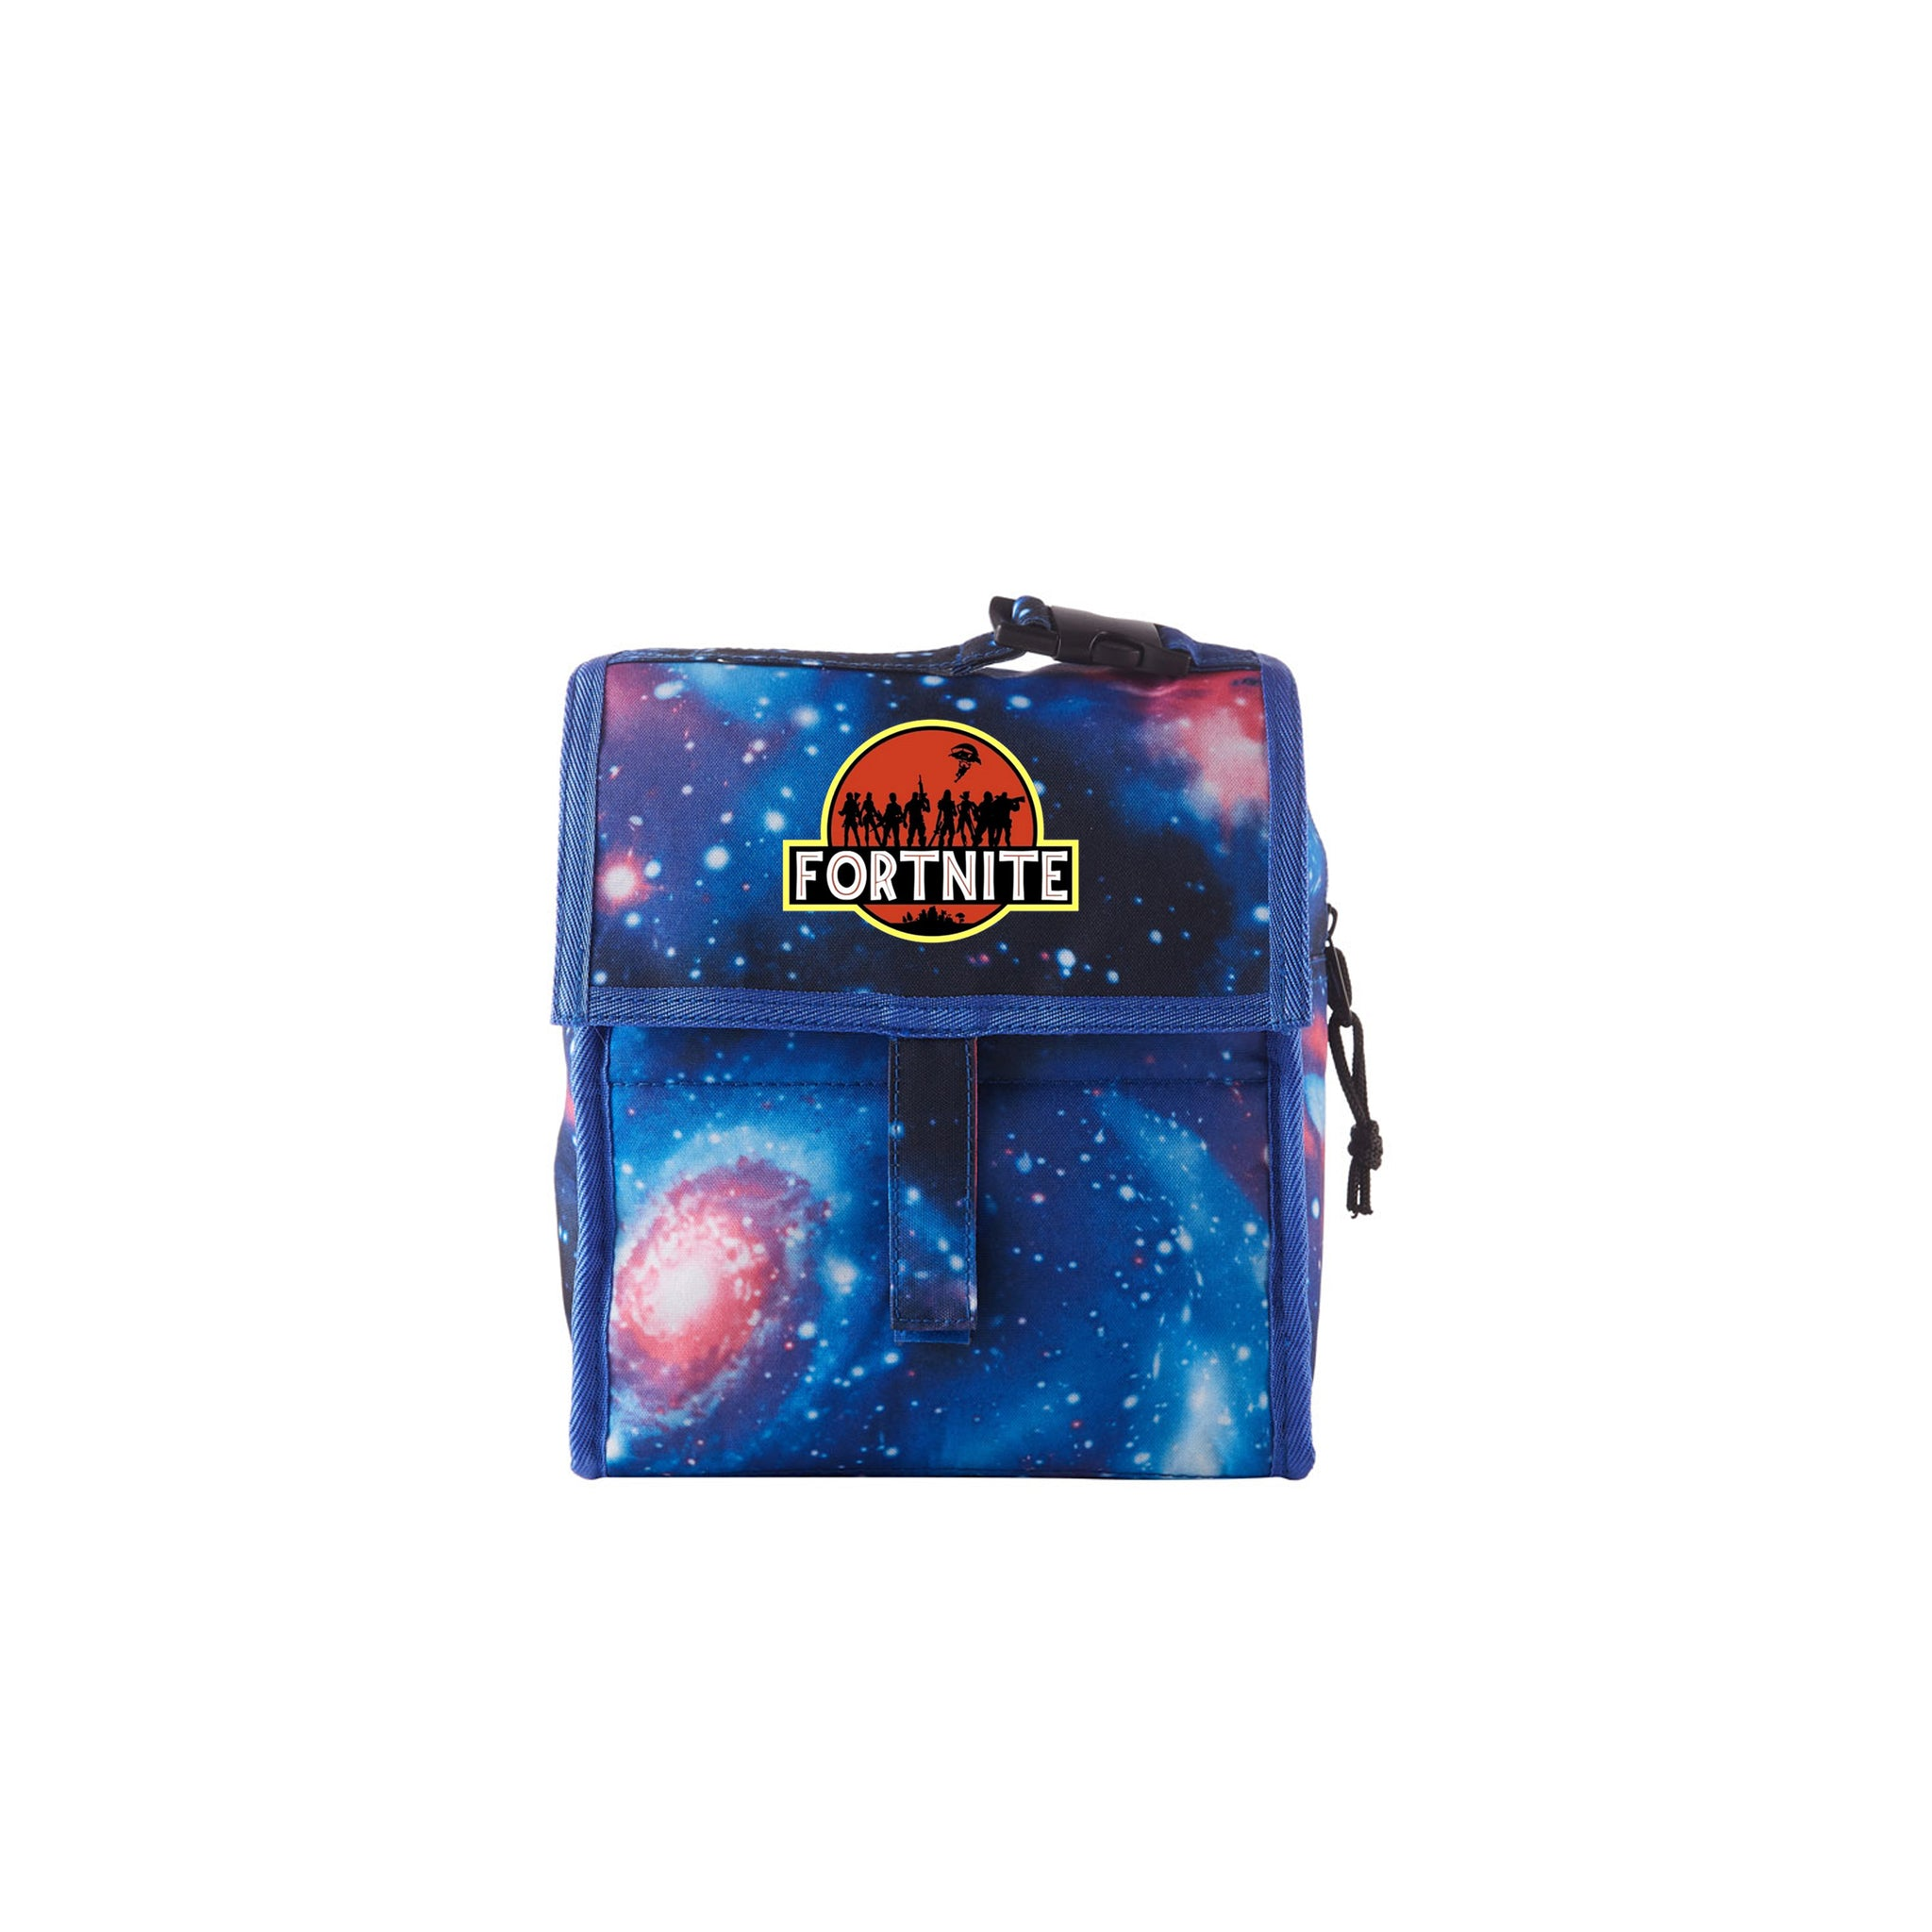 2019 Fortnite Themed New Boys Starry Sky Freezable Lunch Bag with Zip Closure